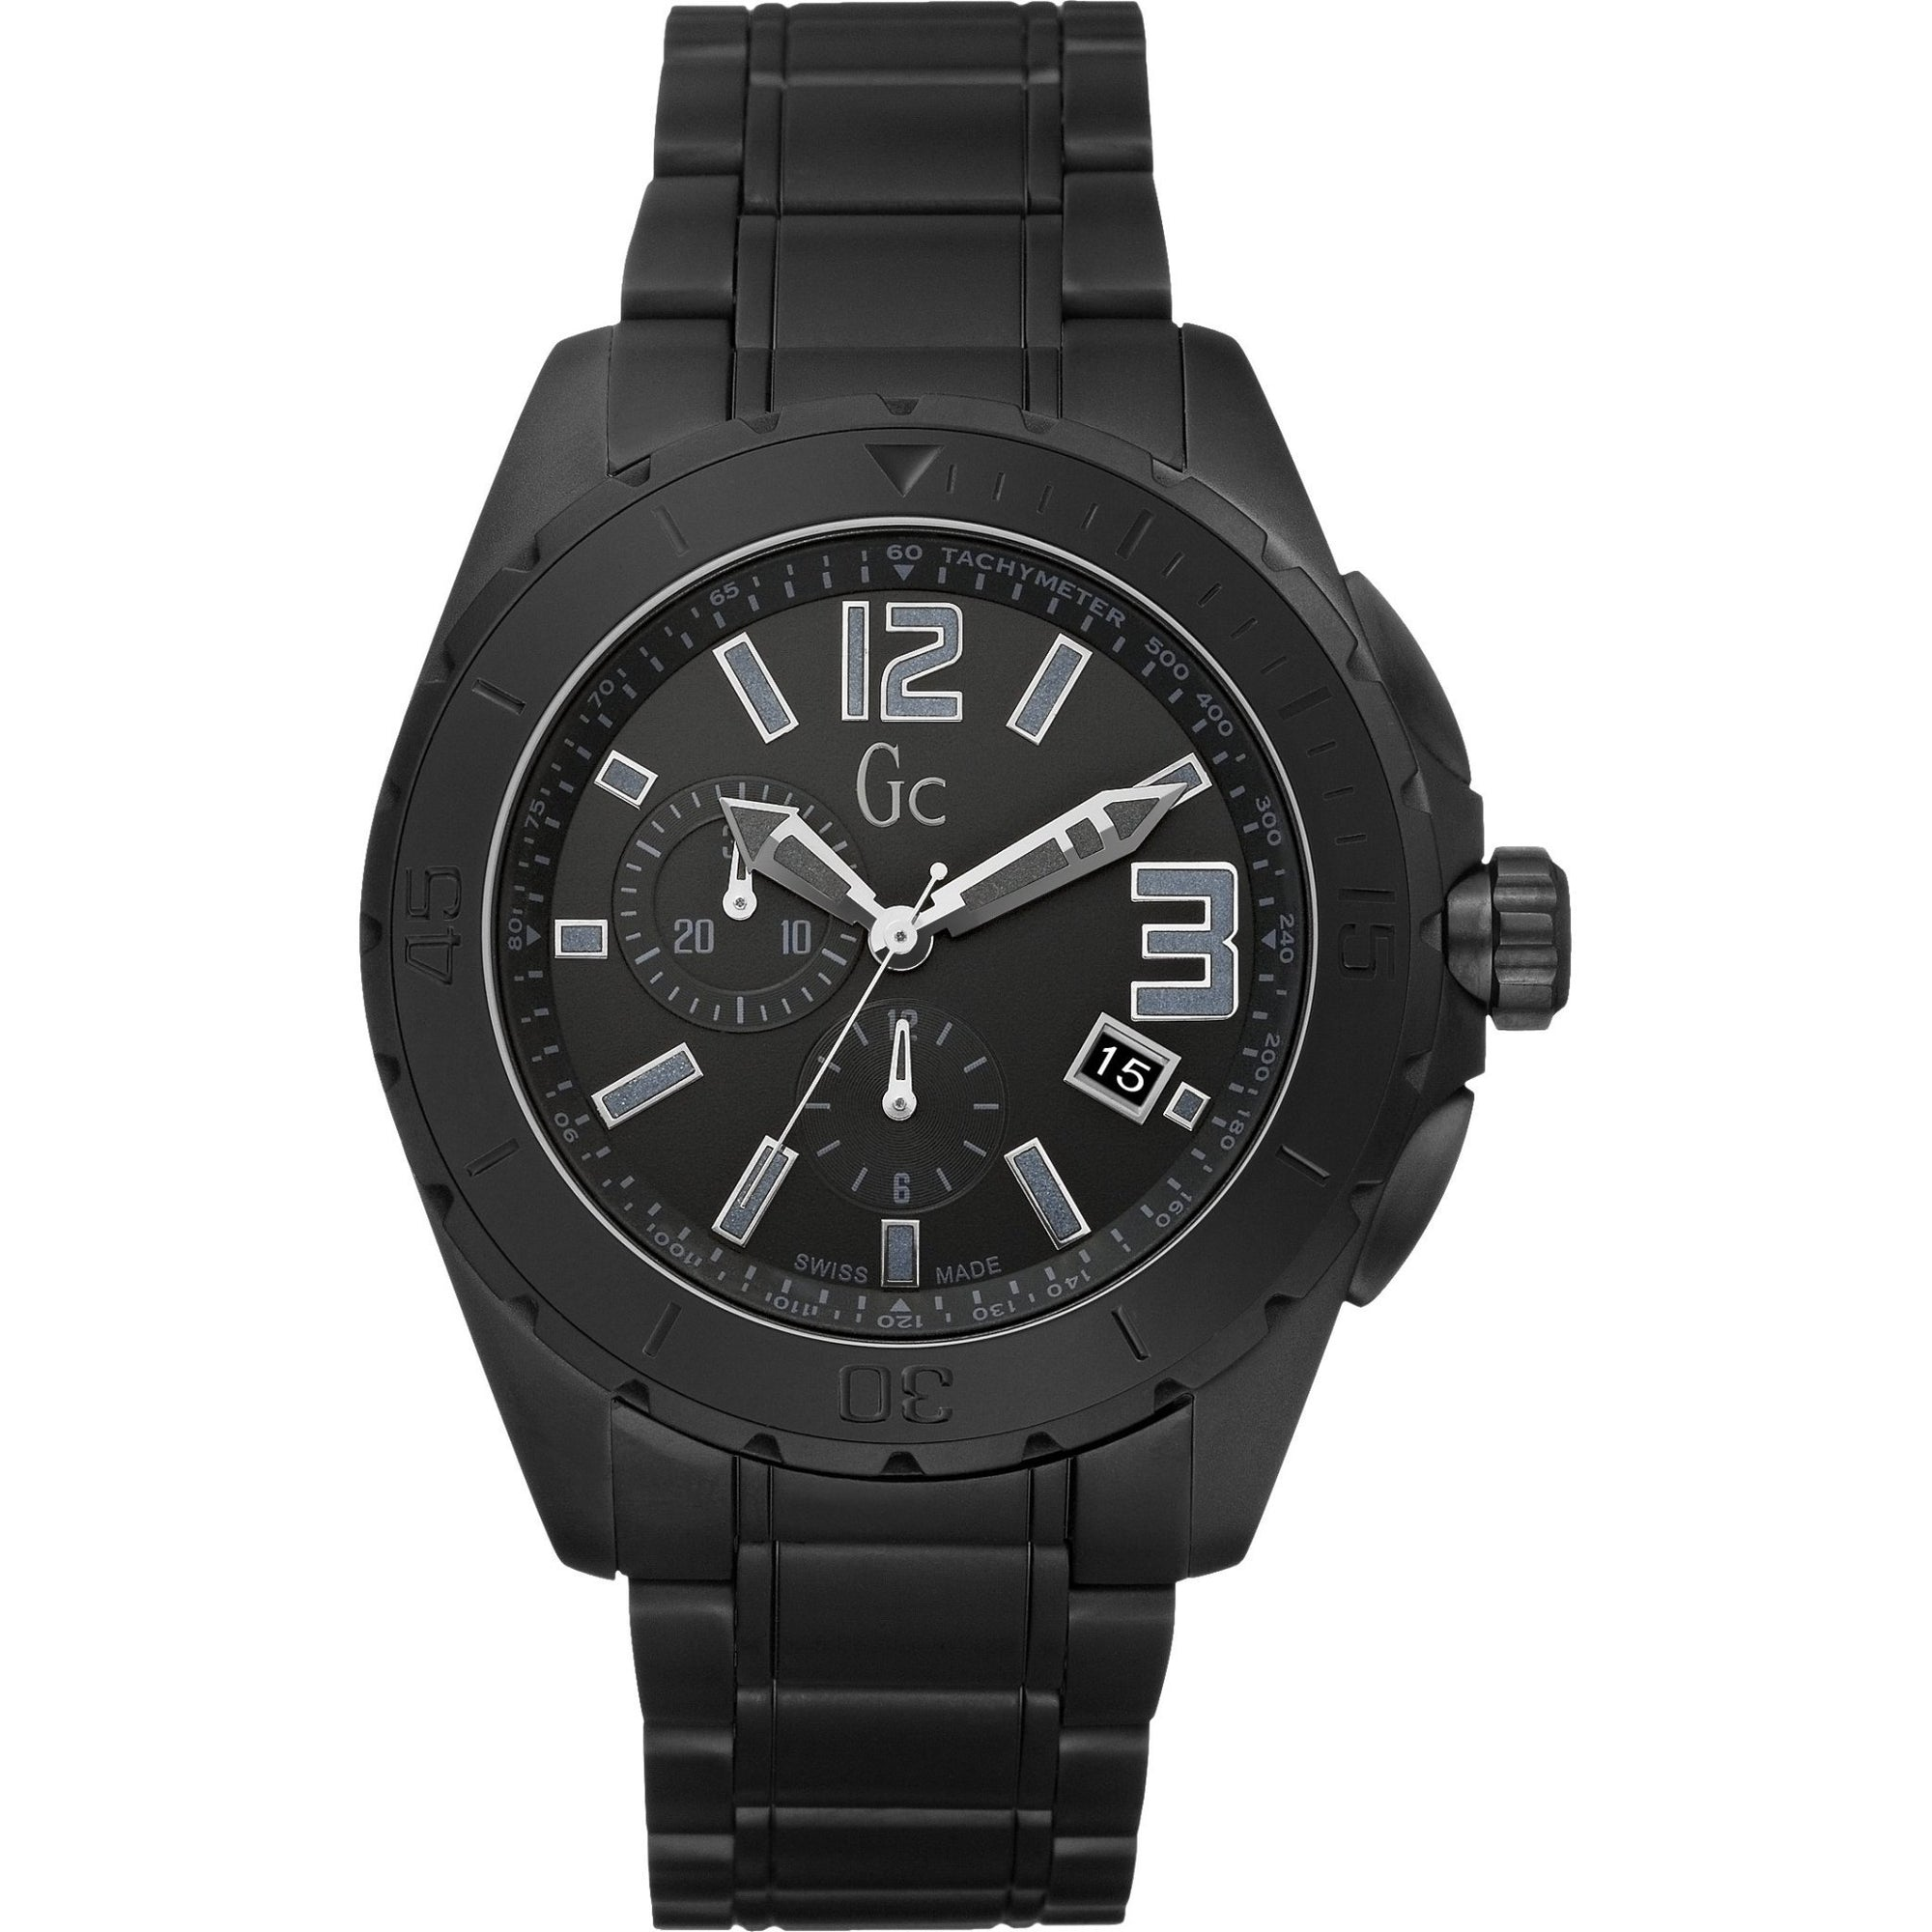 Guess Collection Sport Class XXL Chronograph Black Ceramic - Watches & Crystals